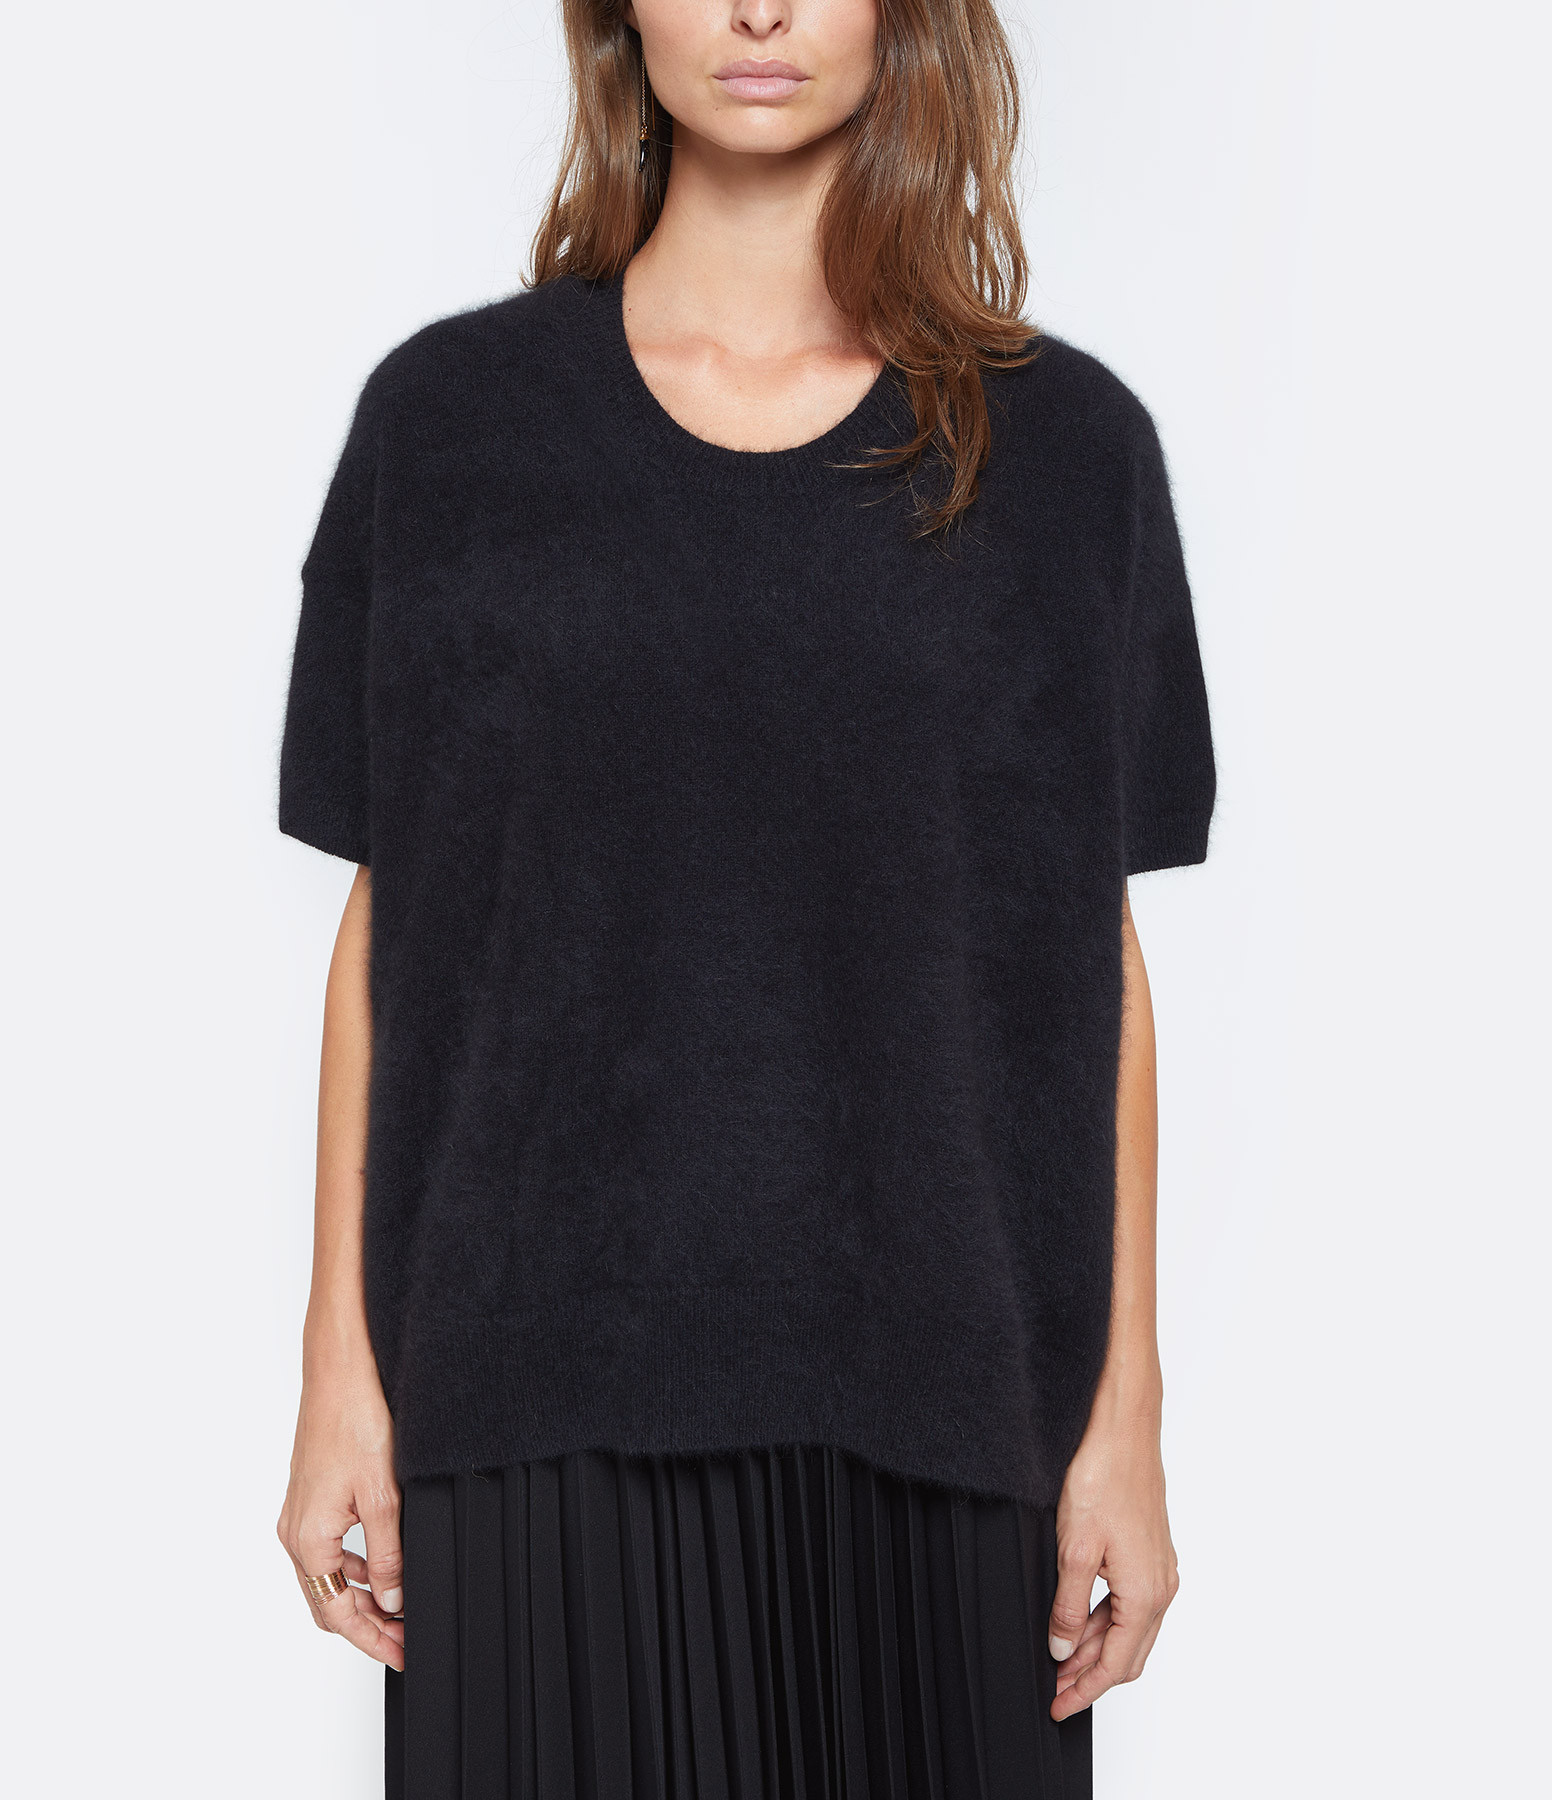 CT PLAGE - Pull Court Raccoon Noir